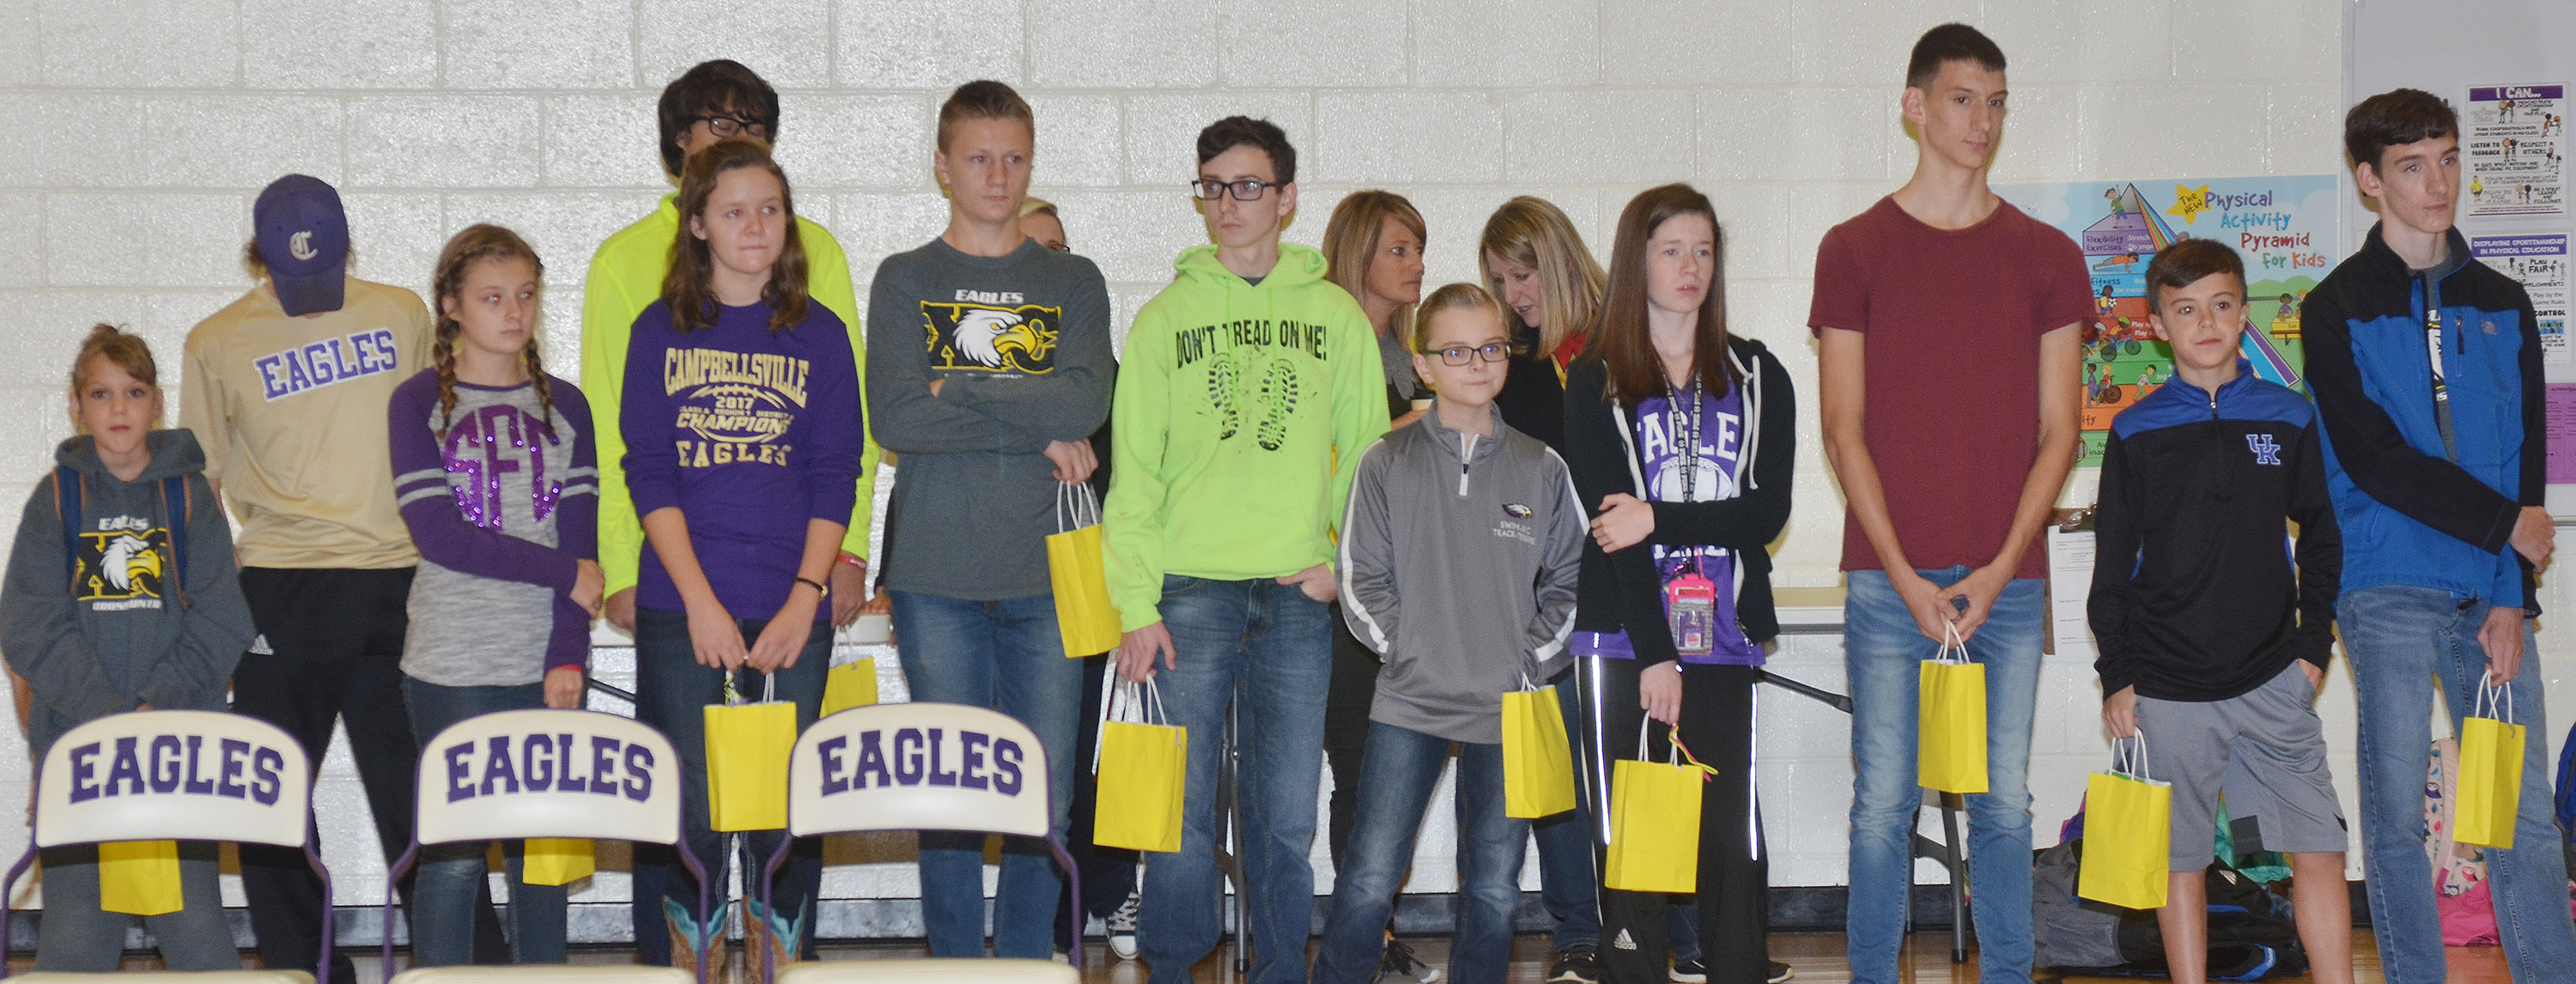 CHS cross country runners are honored at the CES assembly on Friday, Oct. 27.